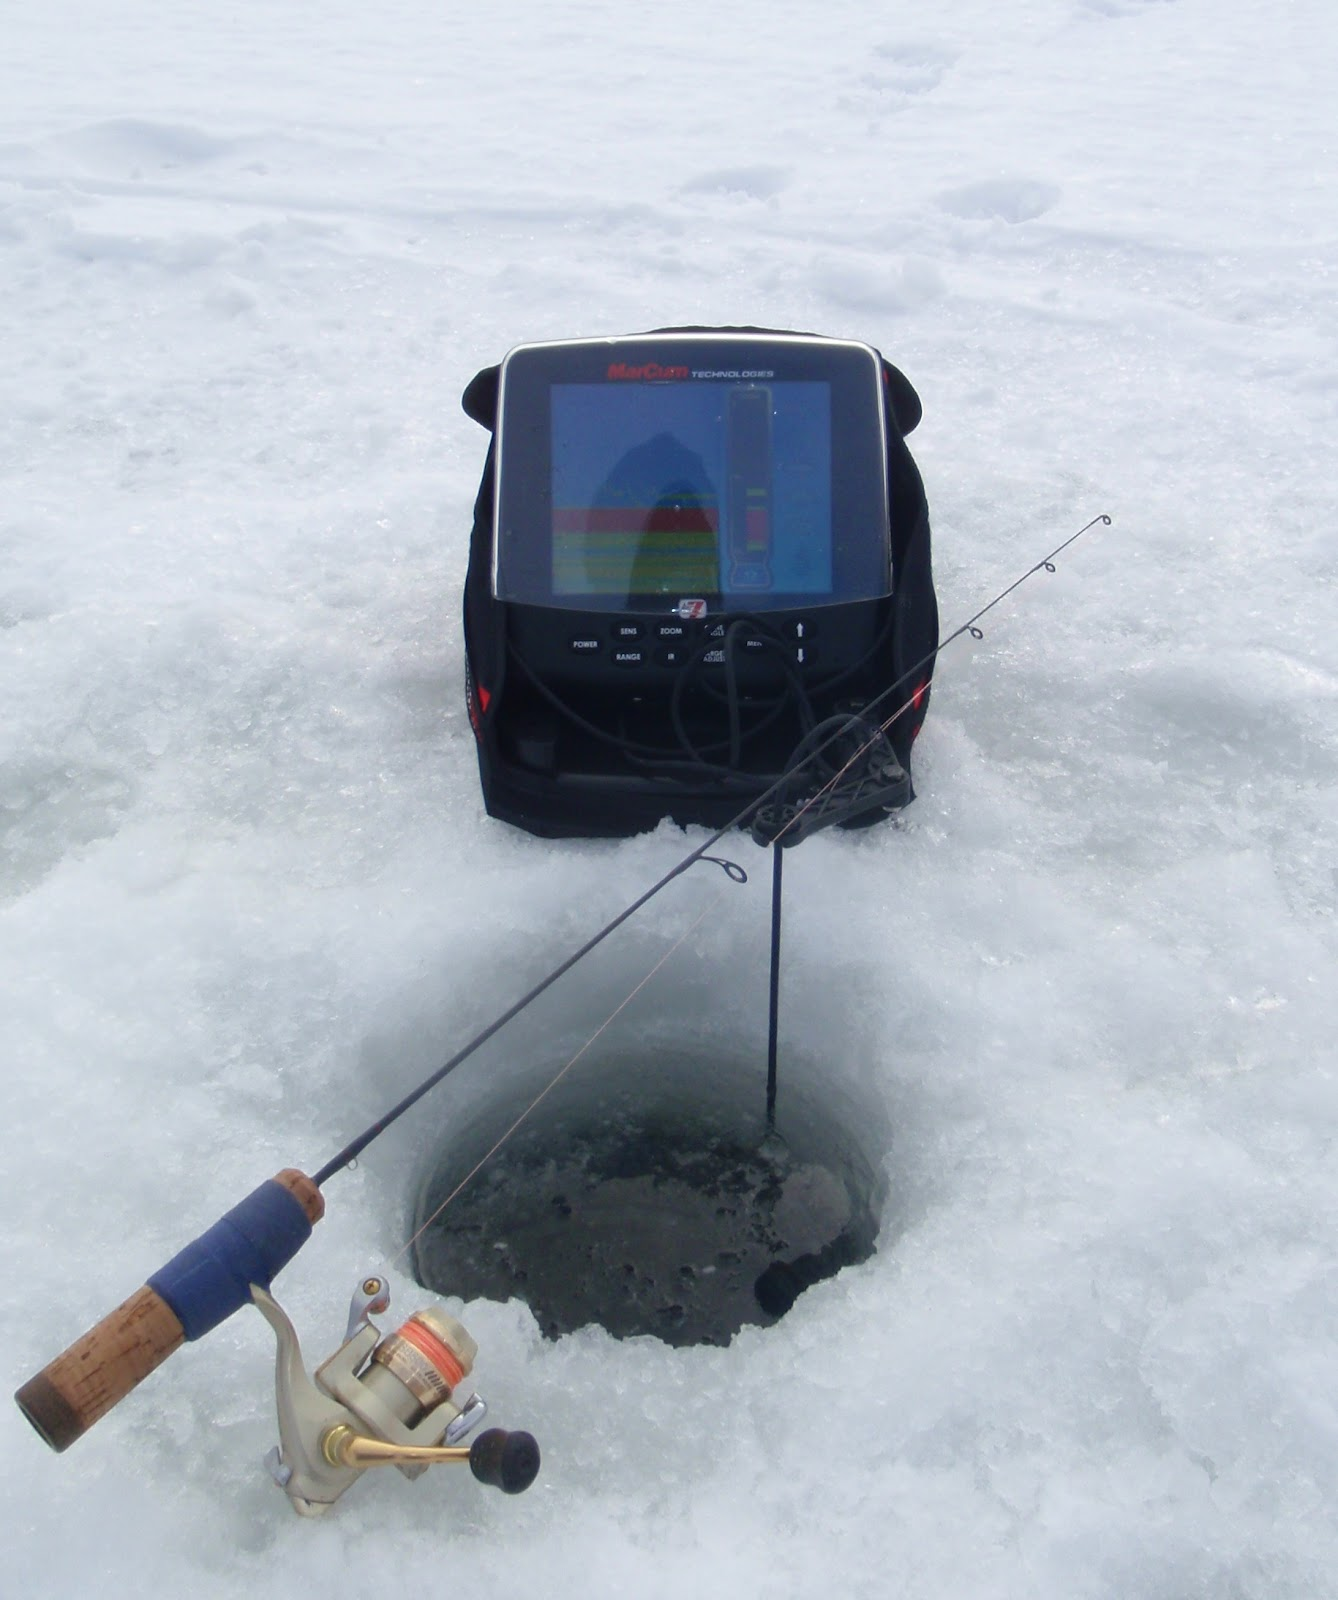 Bass junkies fishing addiction the rise of the marcum lx7 for Marcum ice fishing